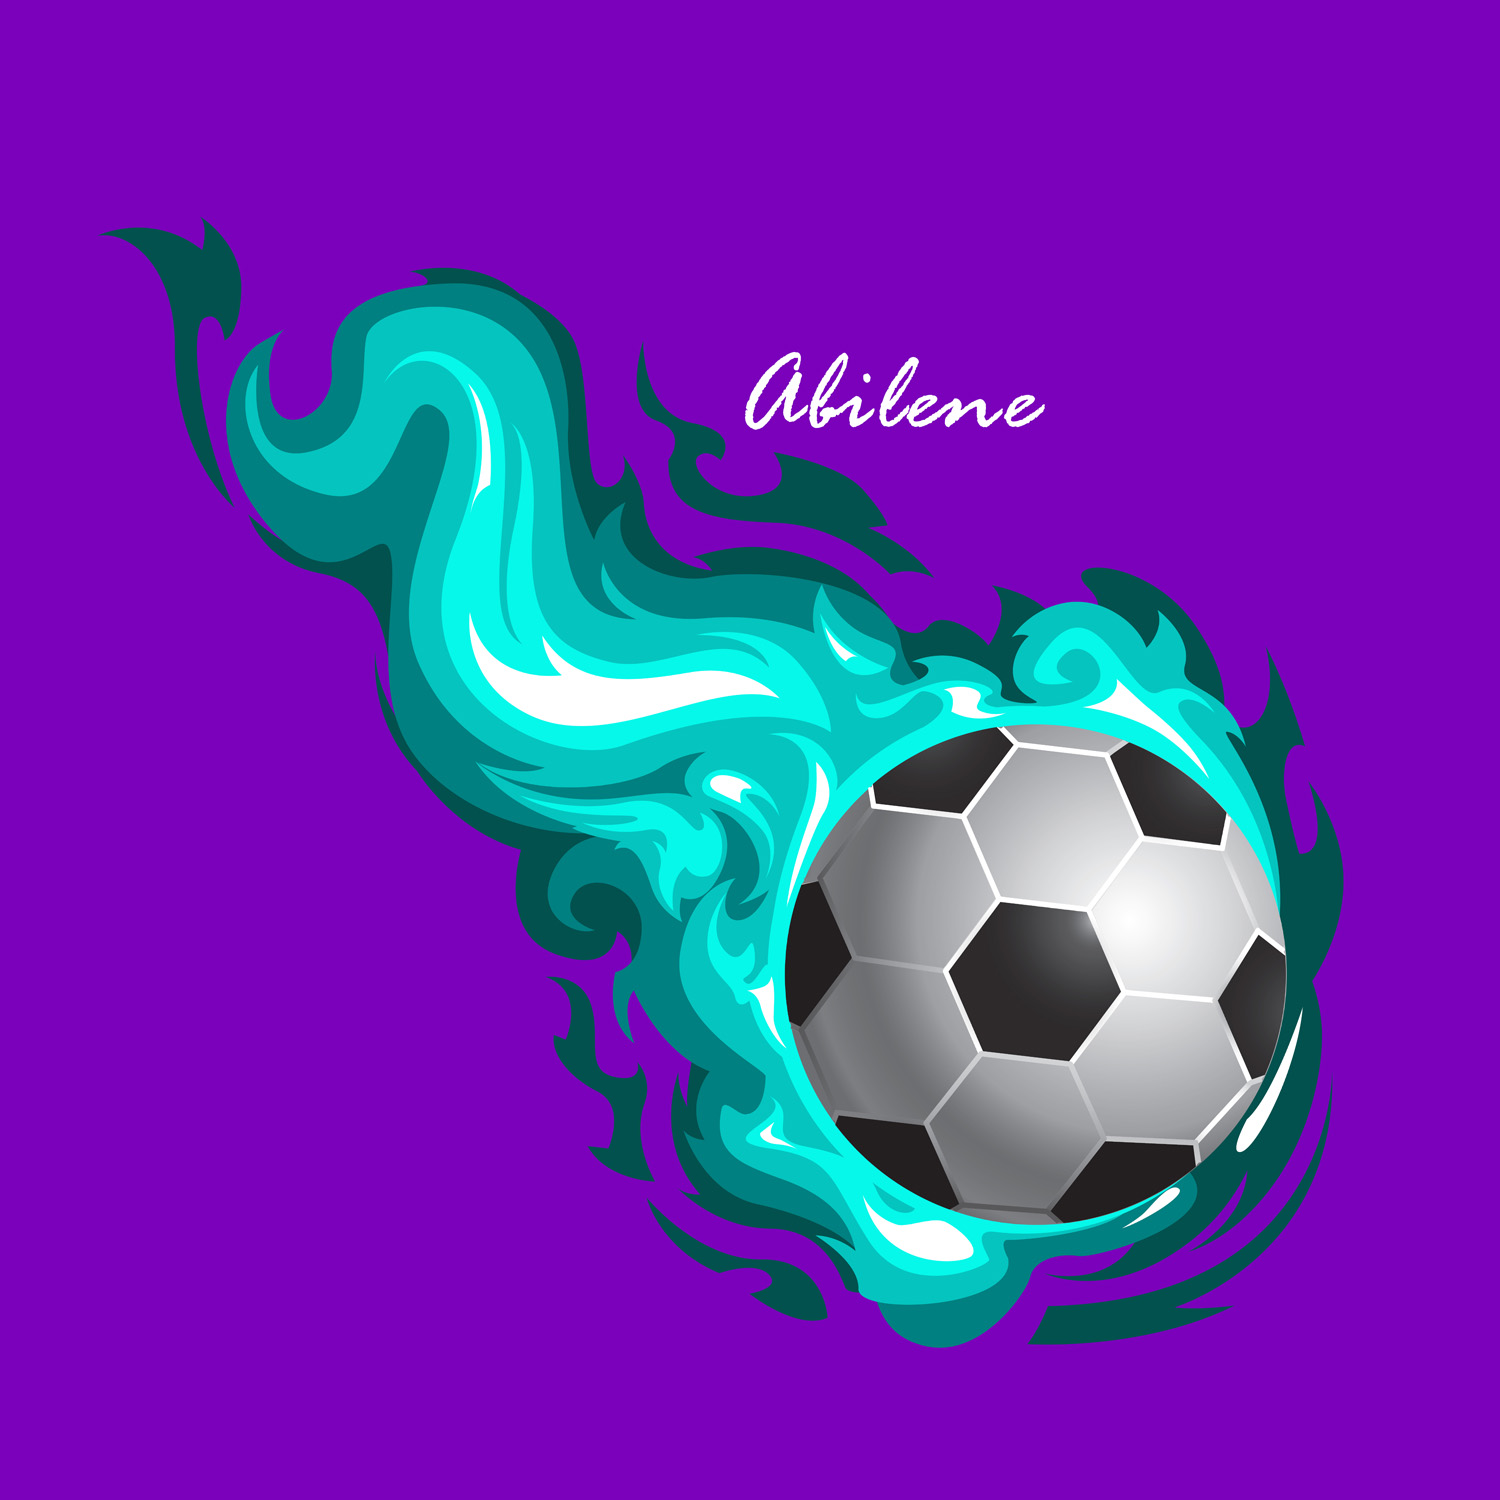 Soccer Bedding For Girls With Teal Flames Amp Purple